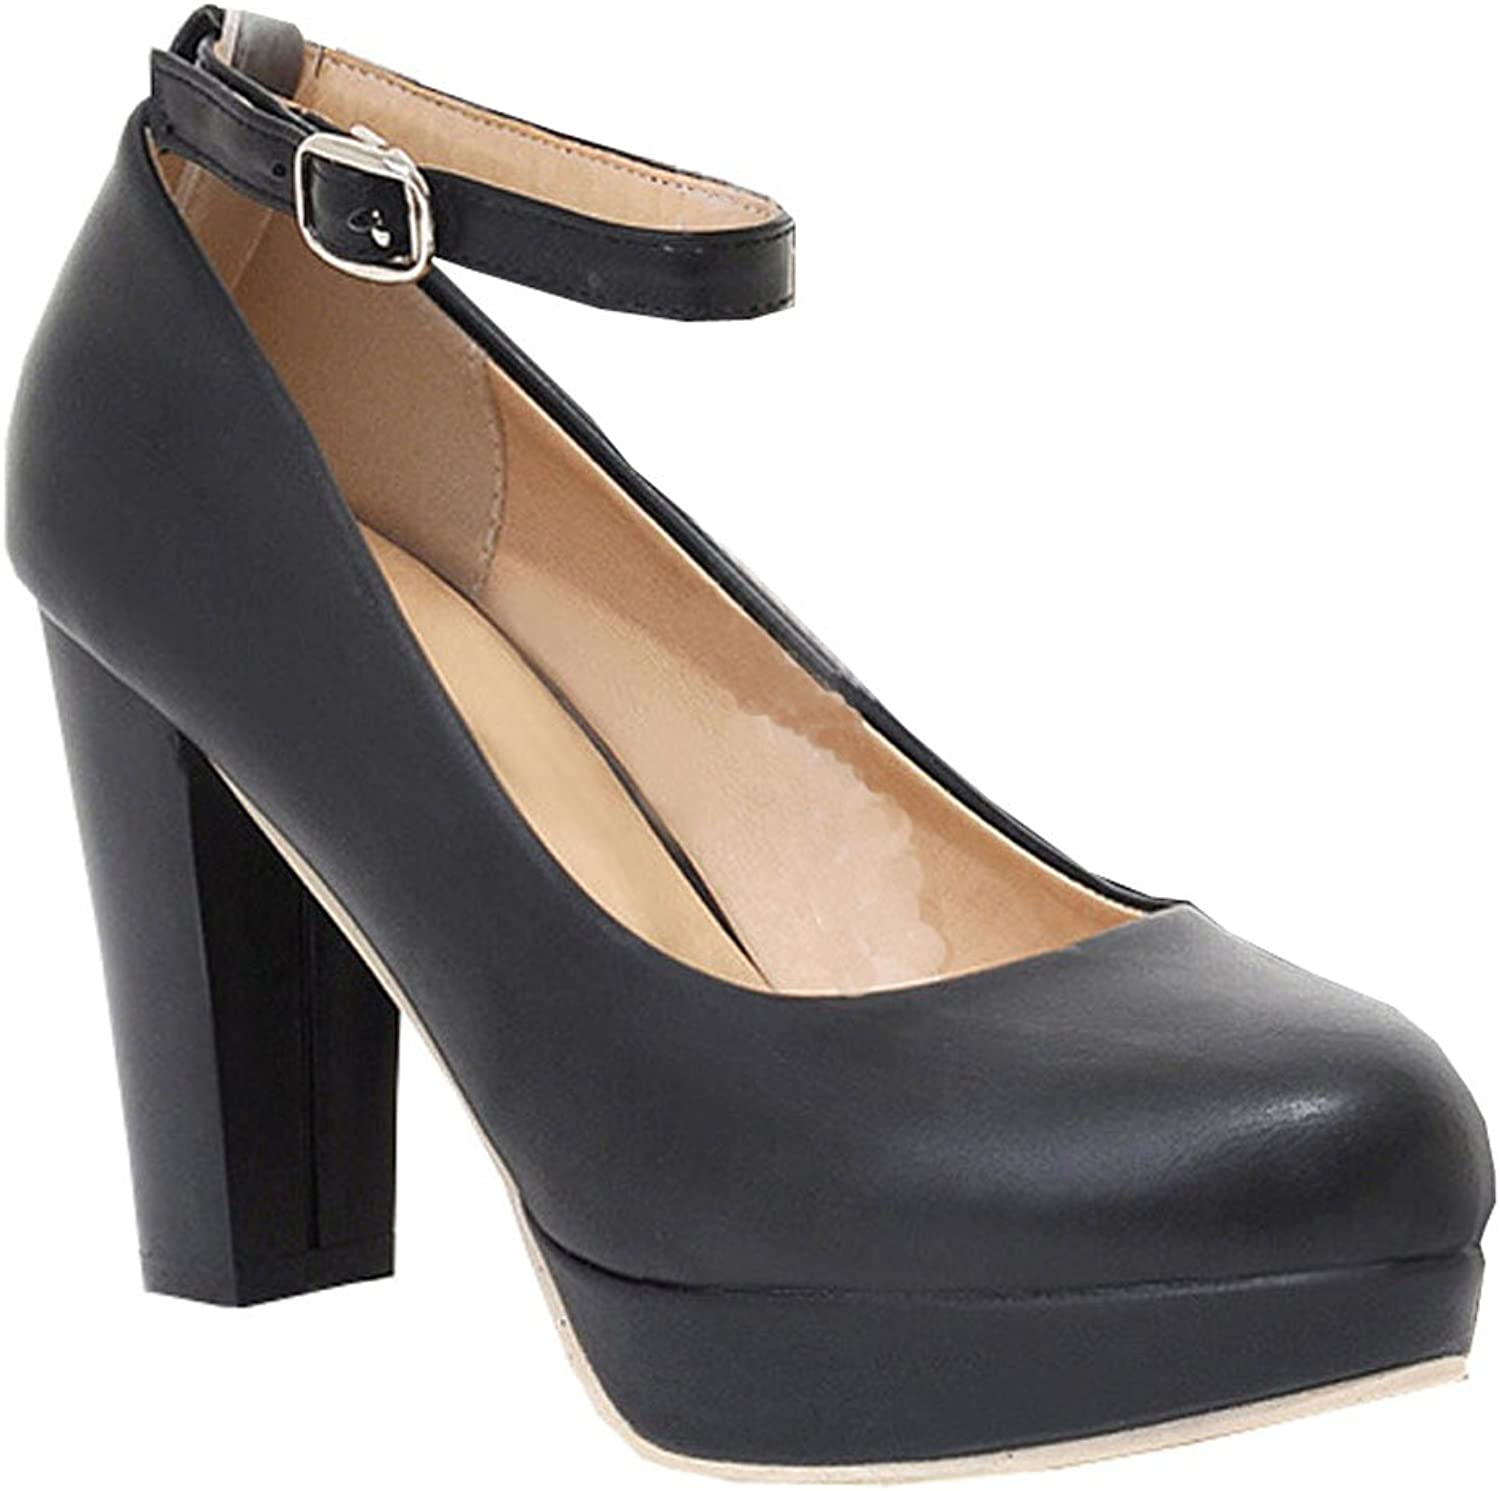 New fall high-heeled shoes shallow mouth the word buckle high heels ladies waterproof shoes